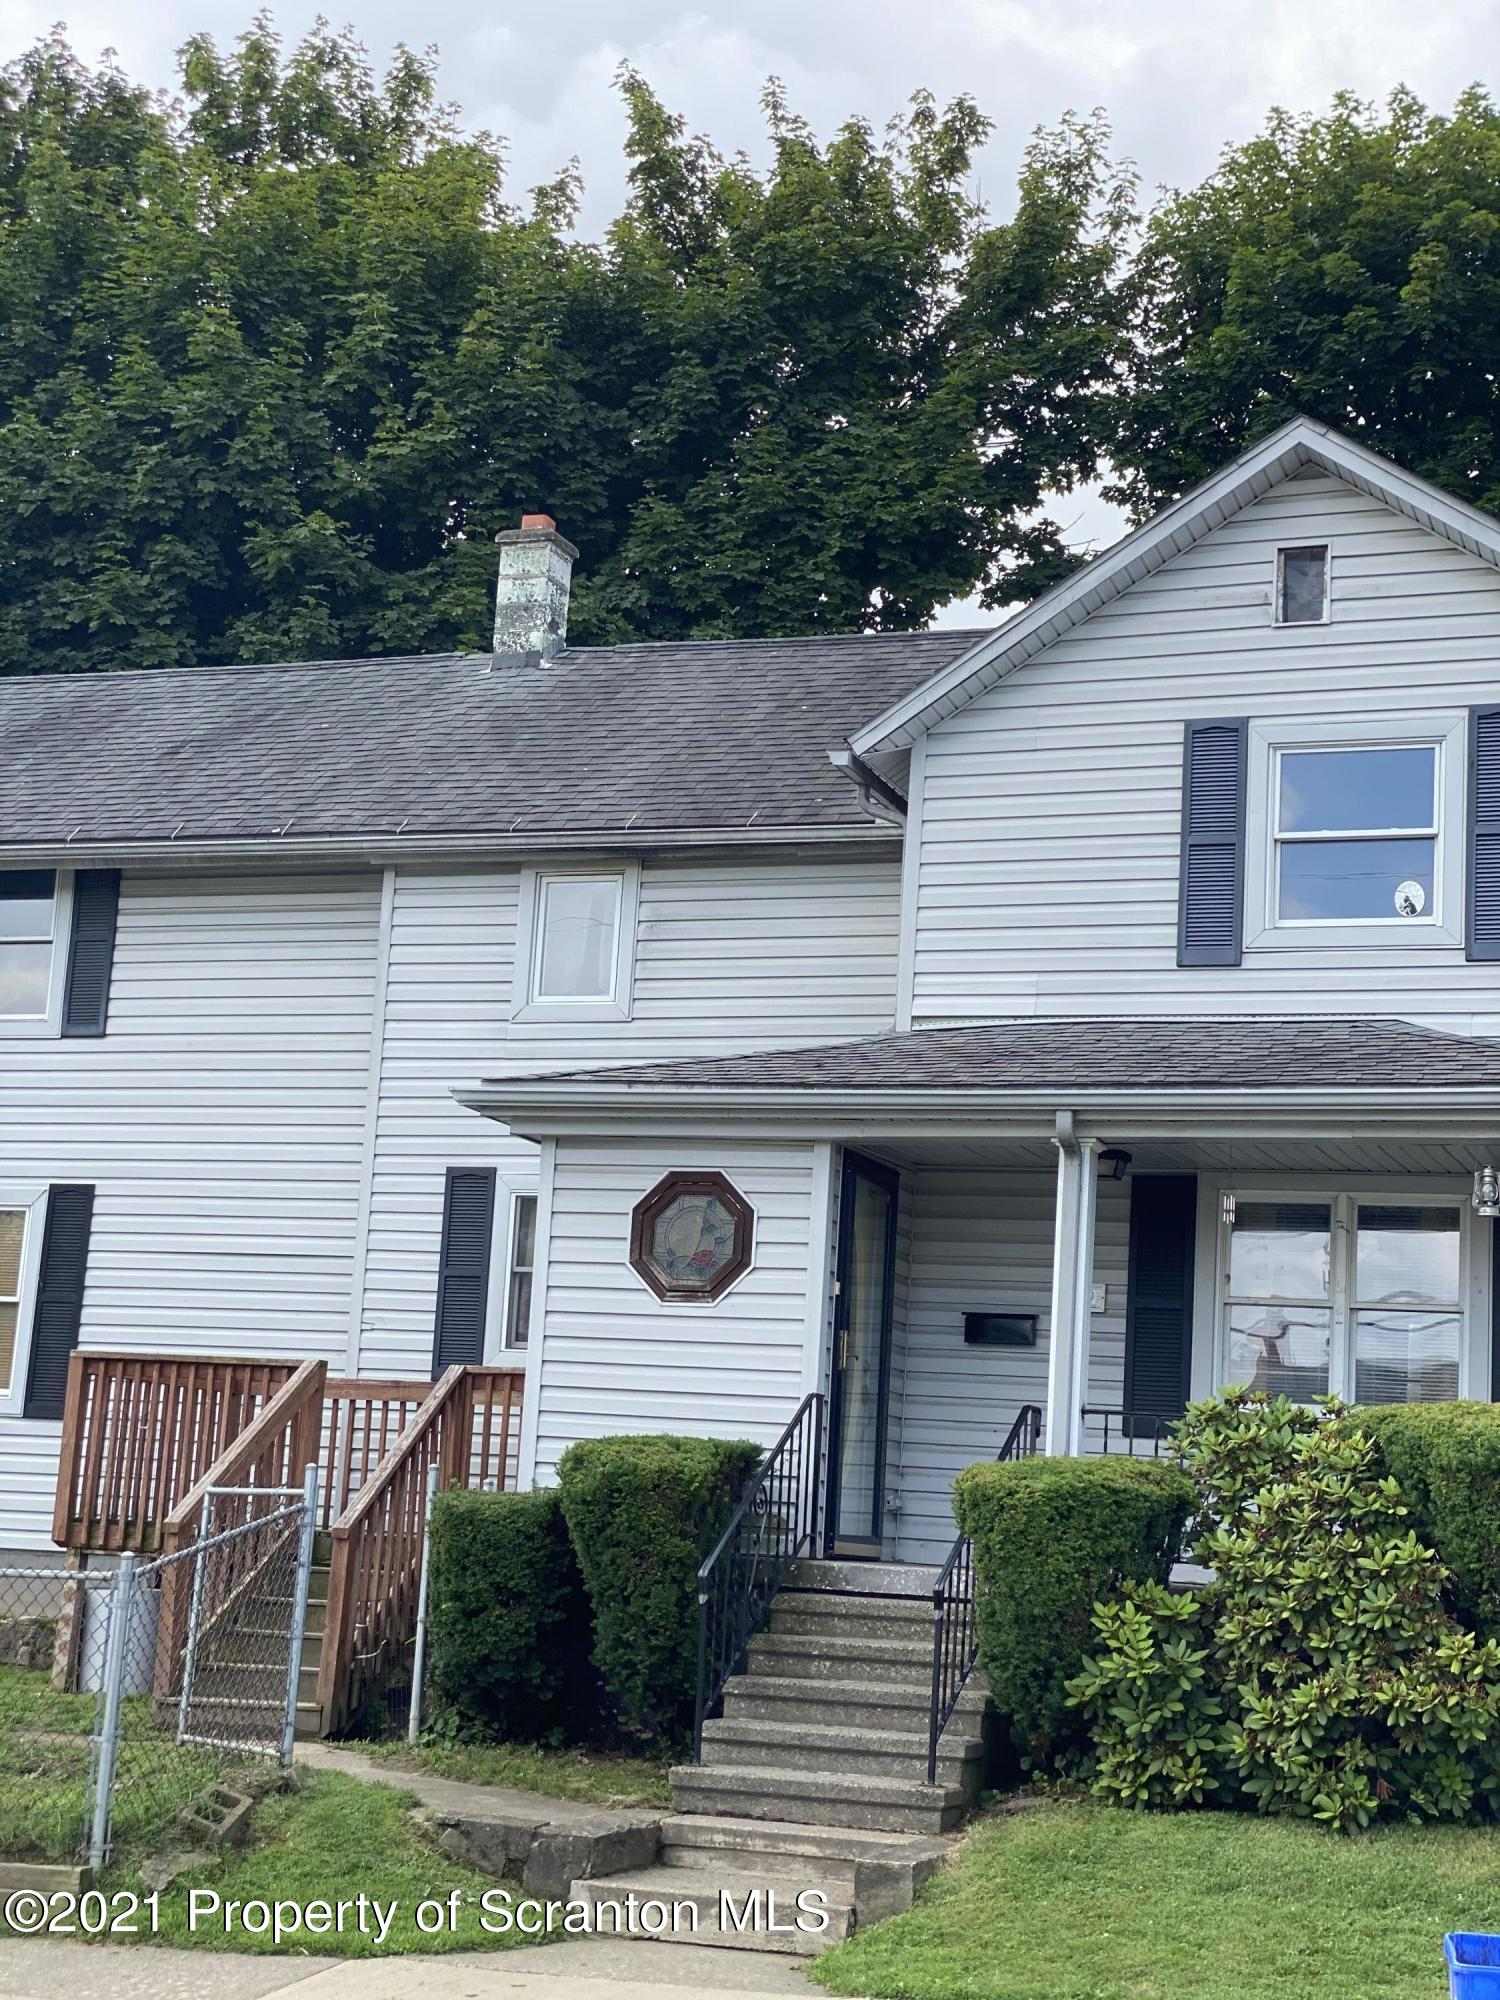 609 Storrs Ave, Dickson City, Pennsylvania 18519, 3 Bedrooms Bedrooms, 7 Rooms Rooms,1 BathroomBathrooms,Single Family,For Sale,Storrs,21-3038